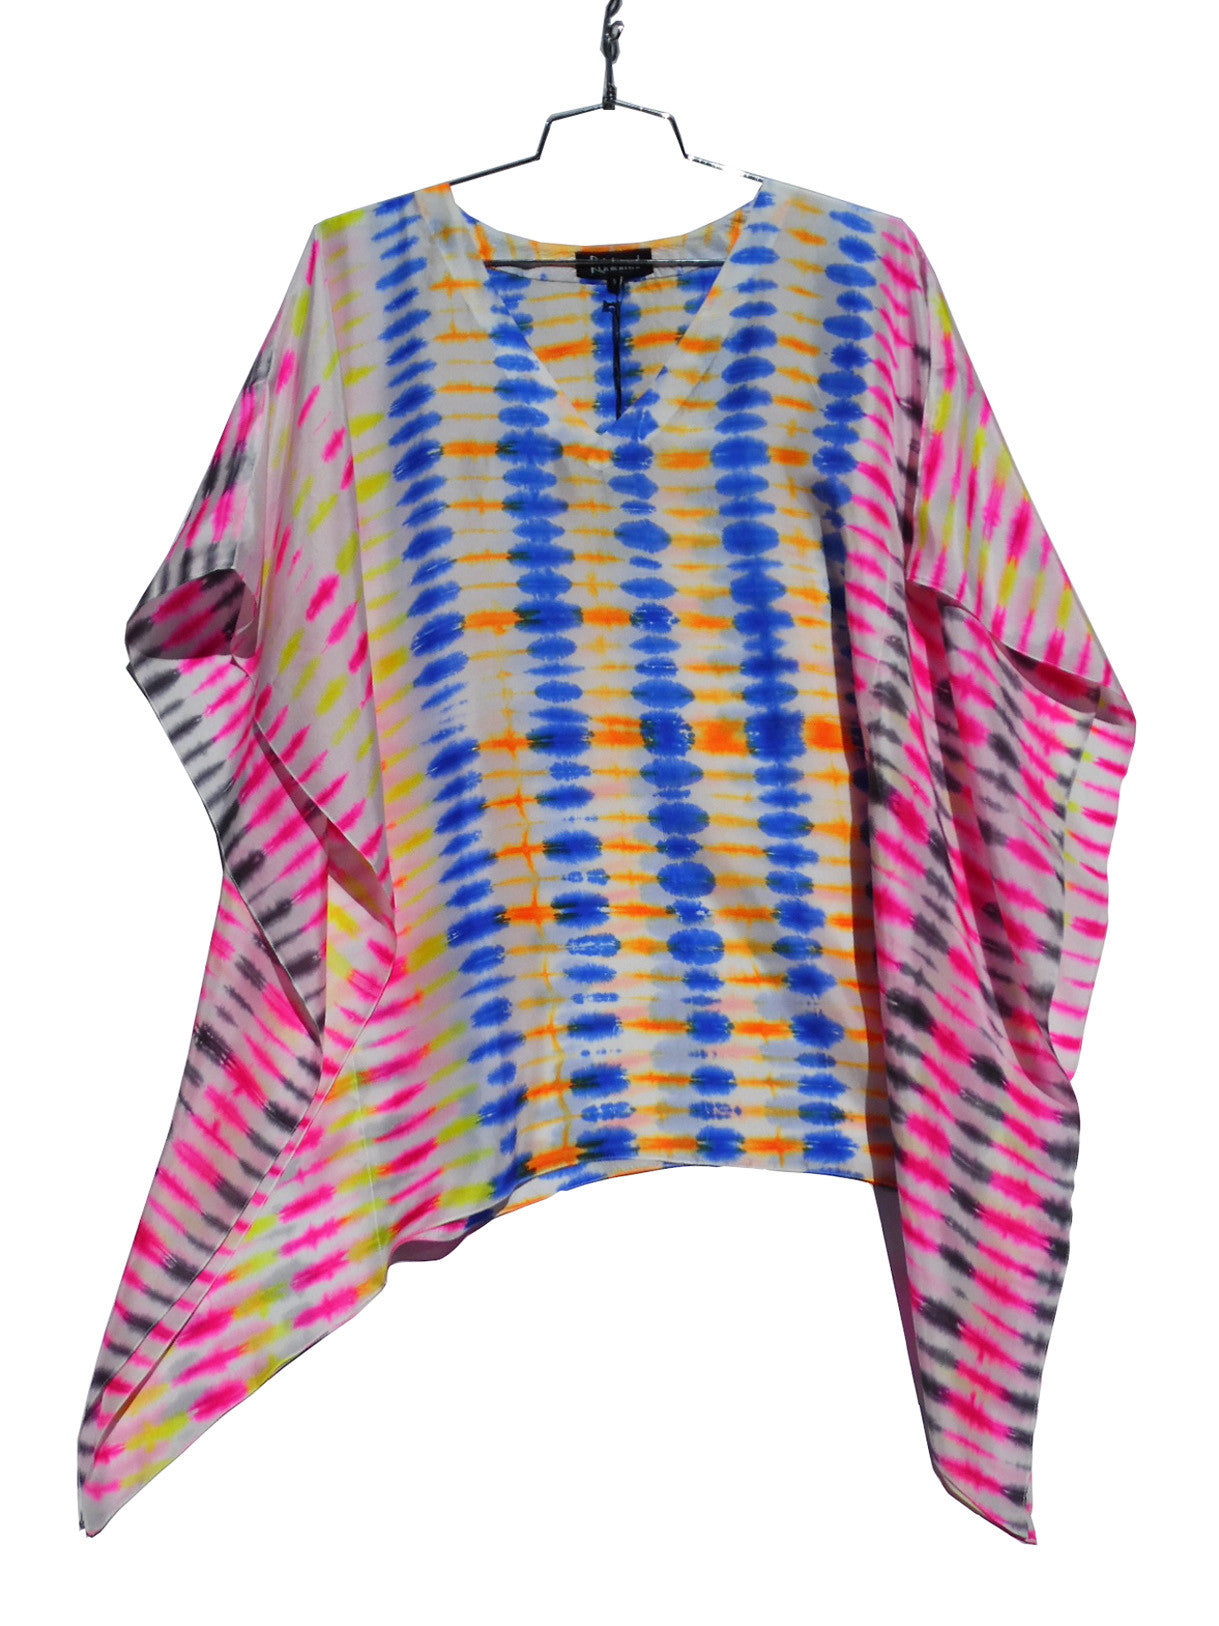 Silk Caftan Tunic In Bright Shibori Tie Dye